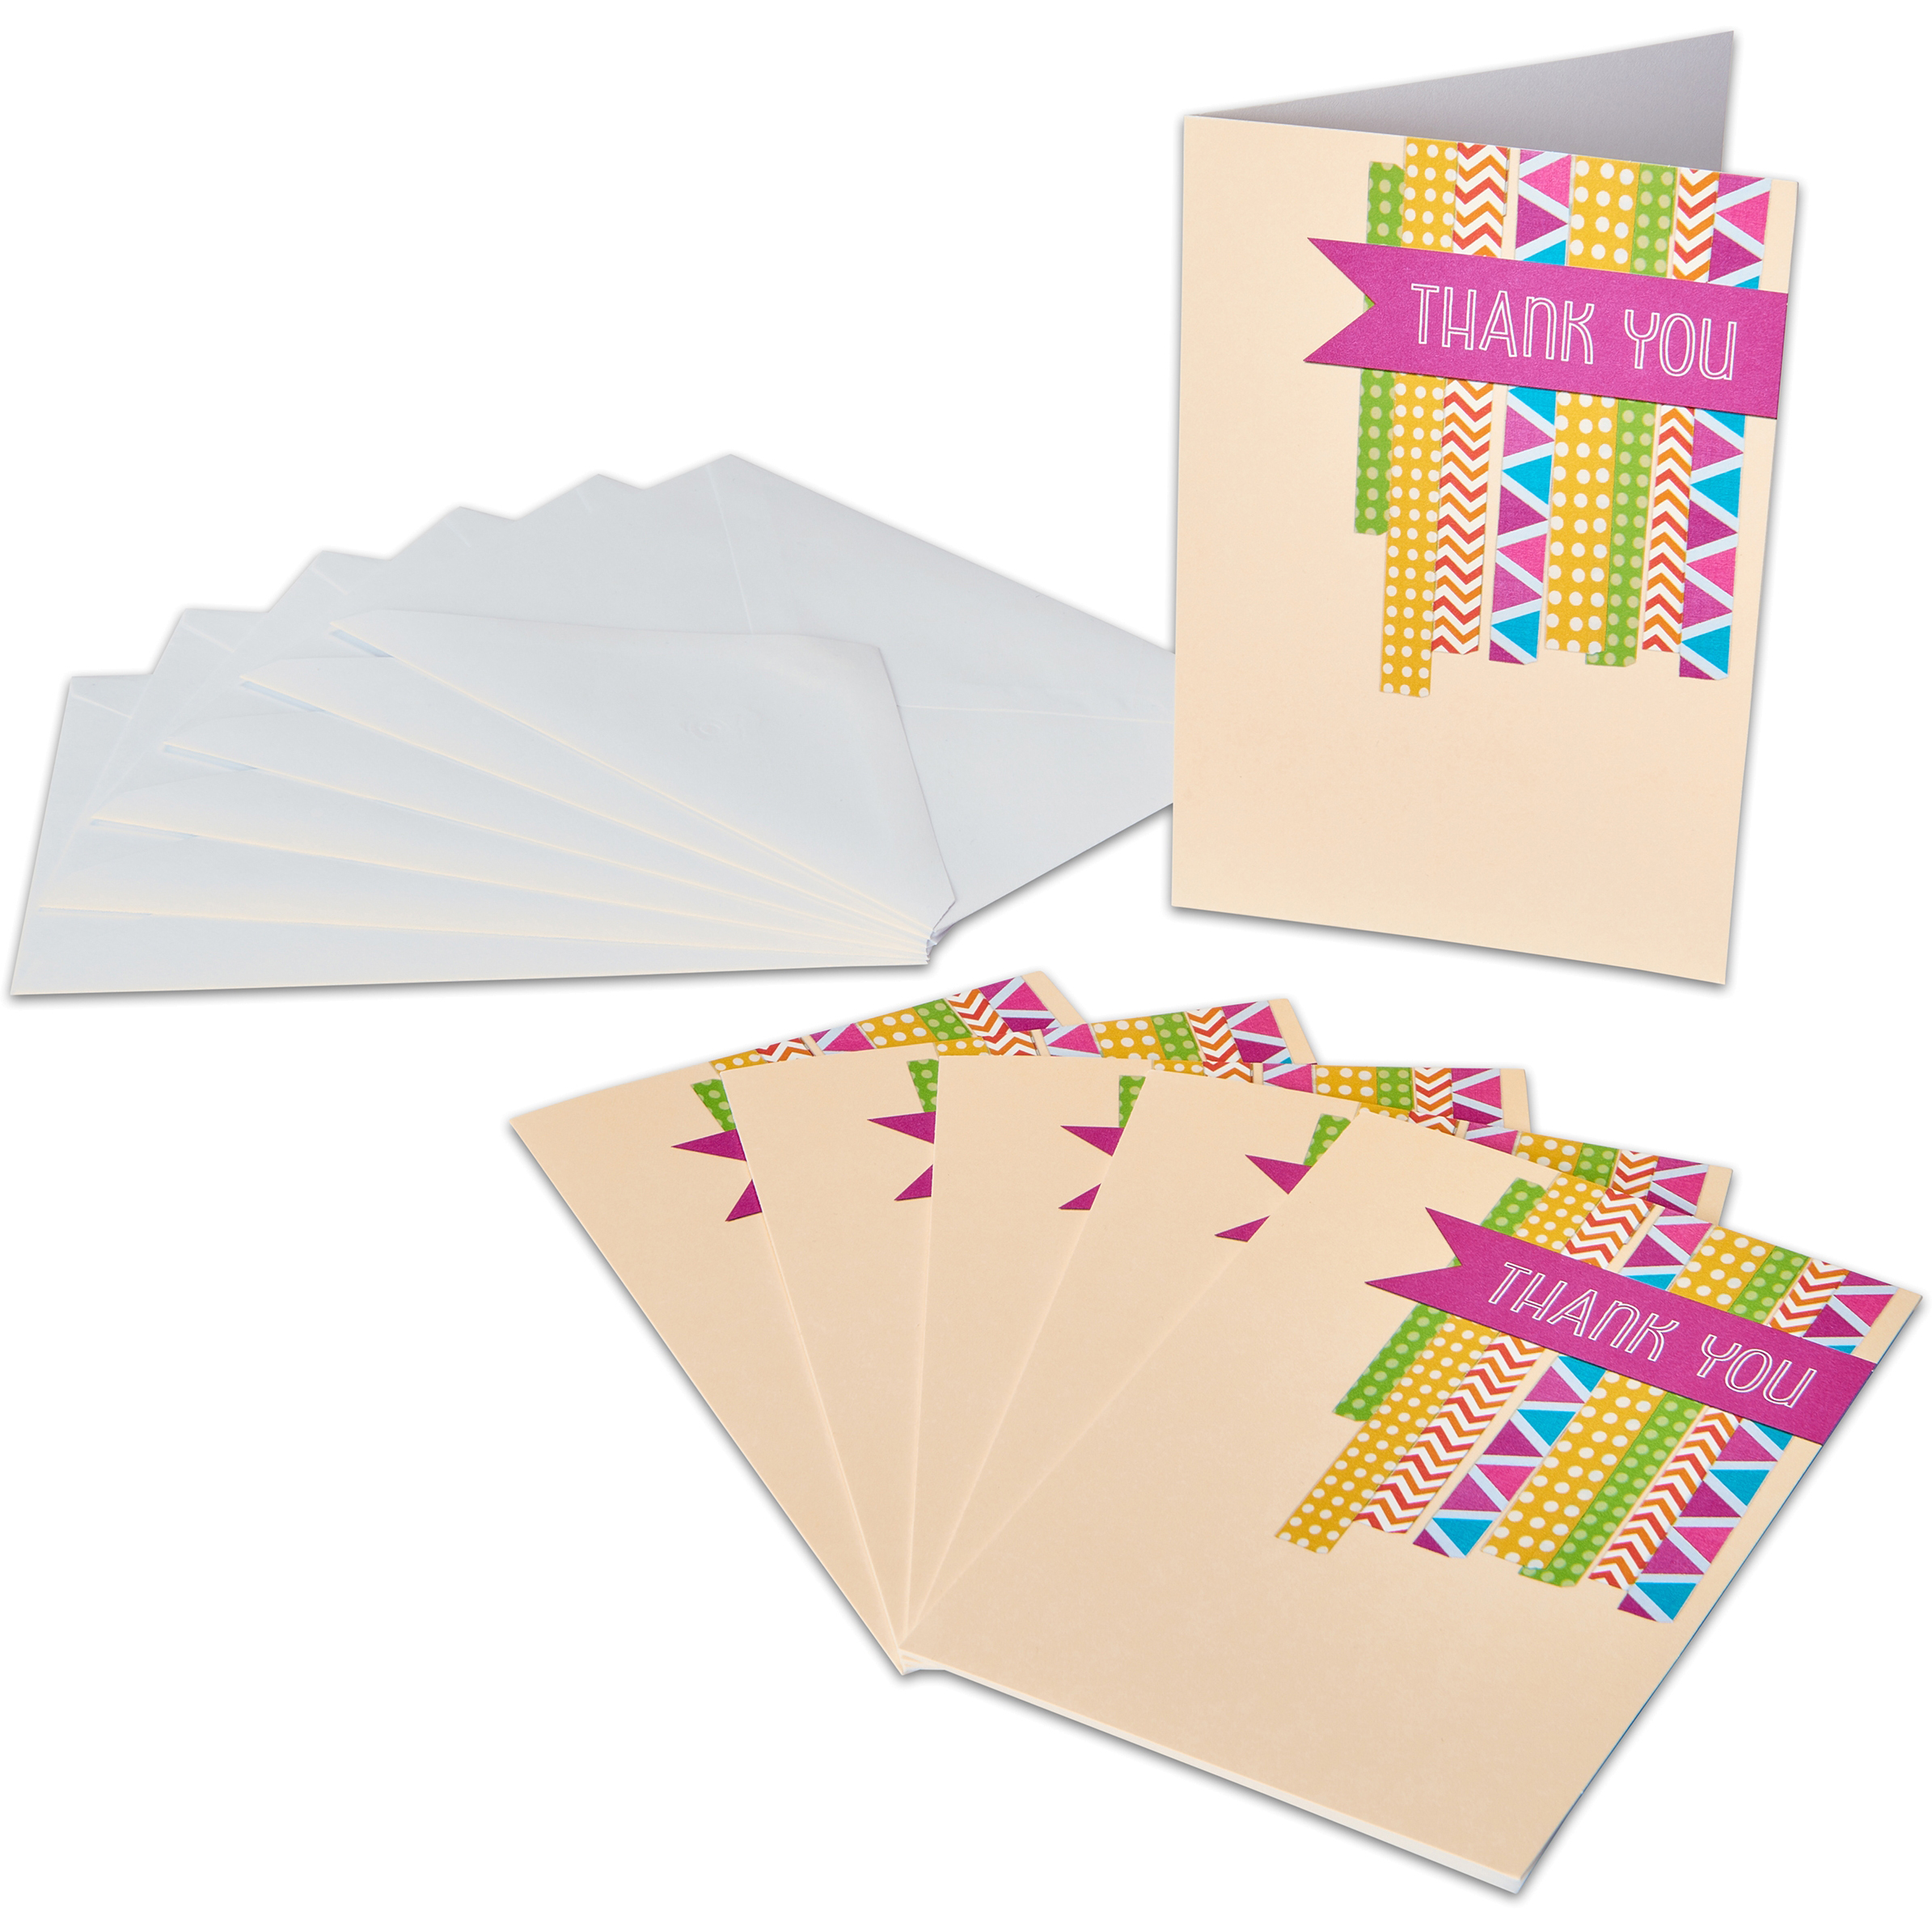 American Greetings Meant So Much Thank You Card Pack, 6ct